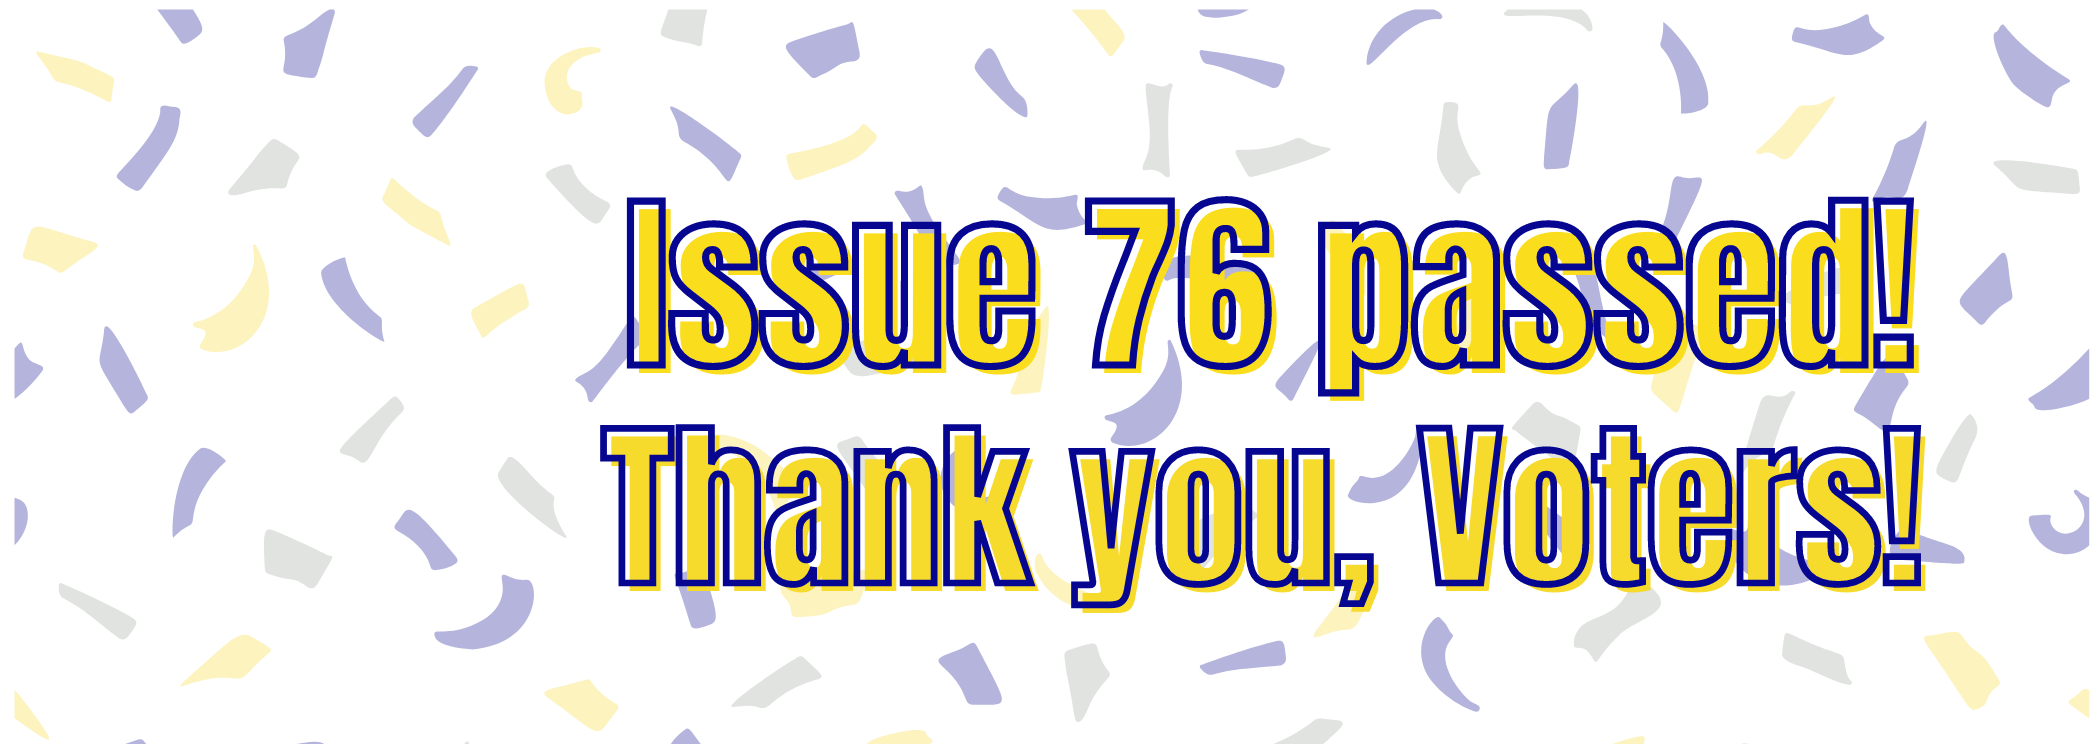 Issue 76 passed thank you voters